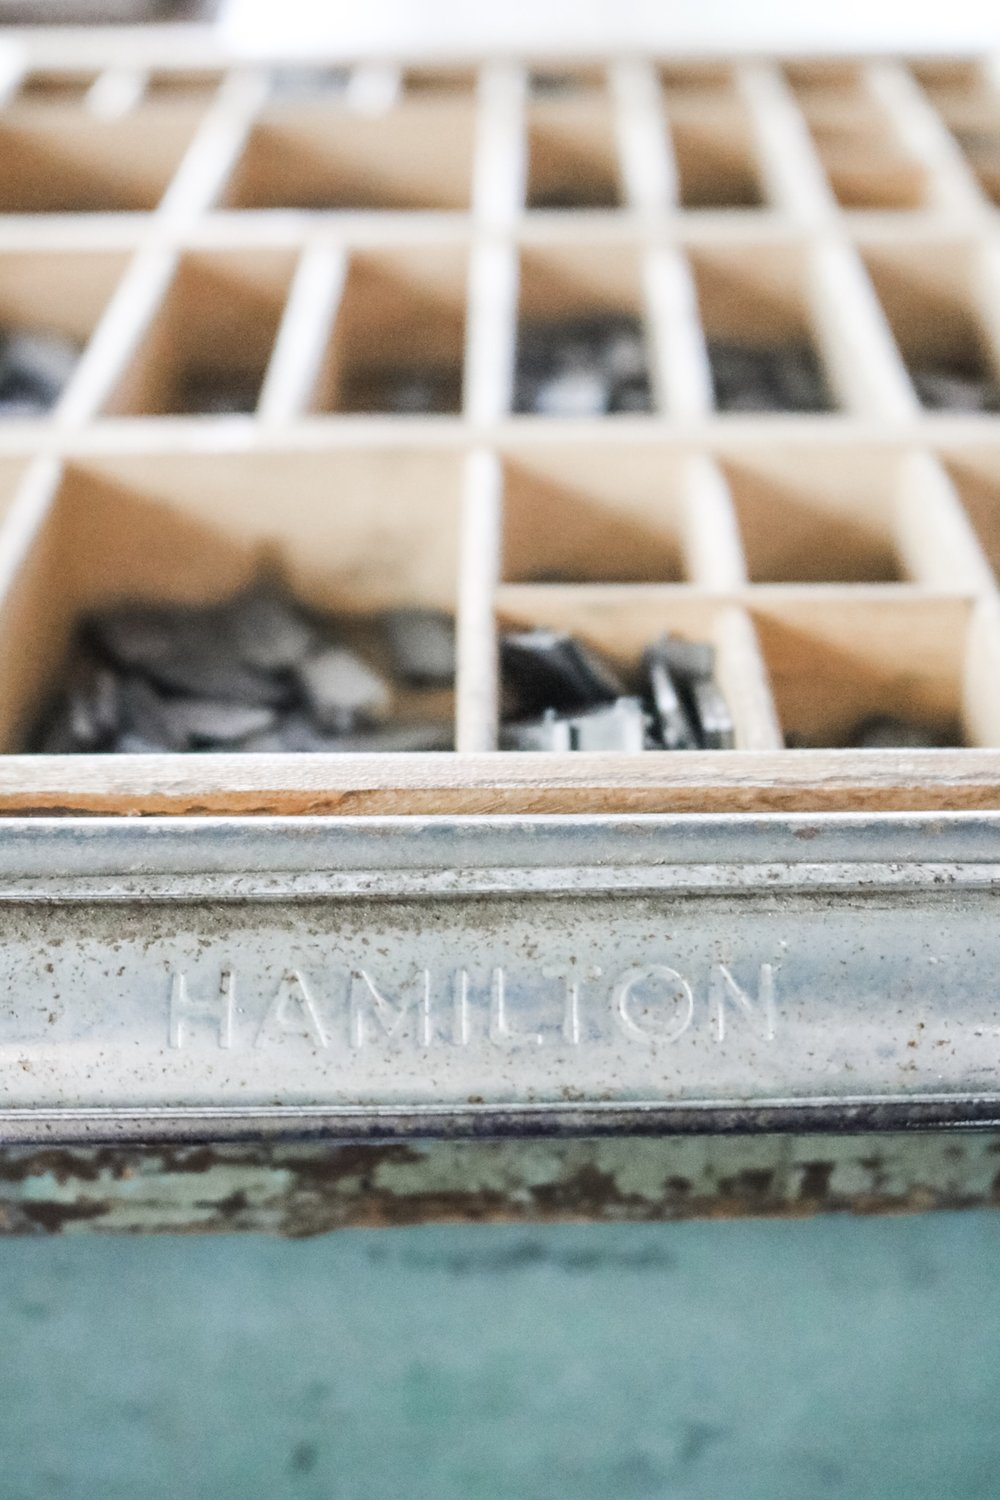 Getting Started with Letterpress Printing by HOPE johnson